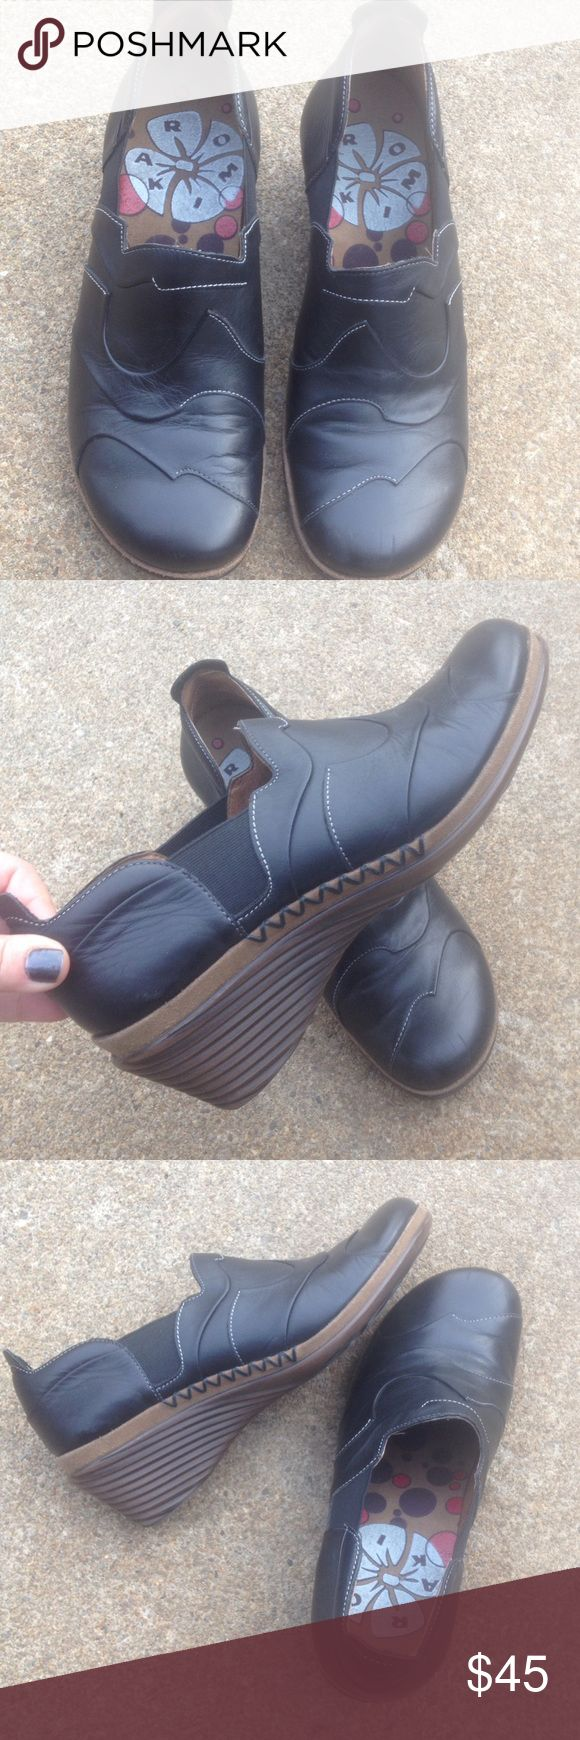 Women's Romika Black Leather Wedge Booties 11M/41 Women's Romika Black Leather Wedge Booties 11M/41 These are in awesome condition! Romika Shoes Ankle Boots & Booties